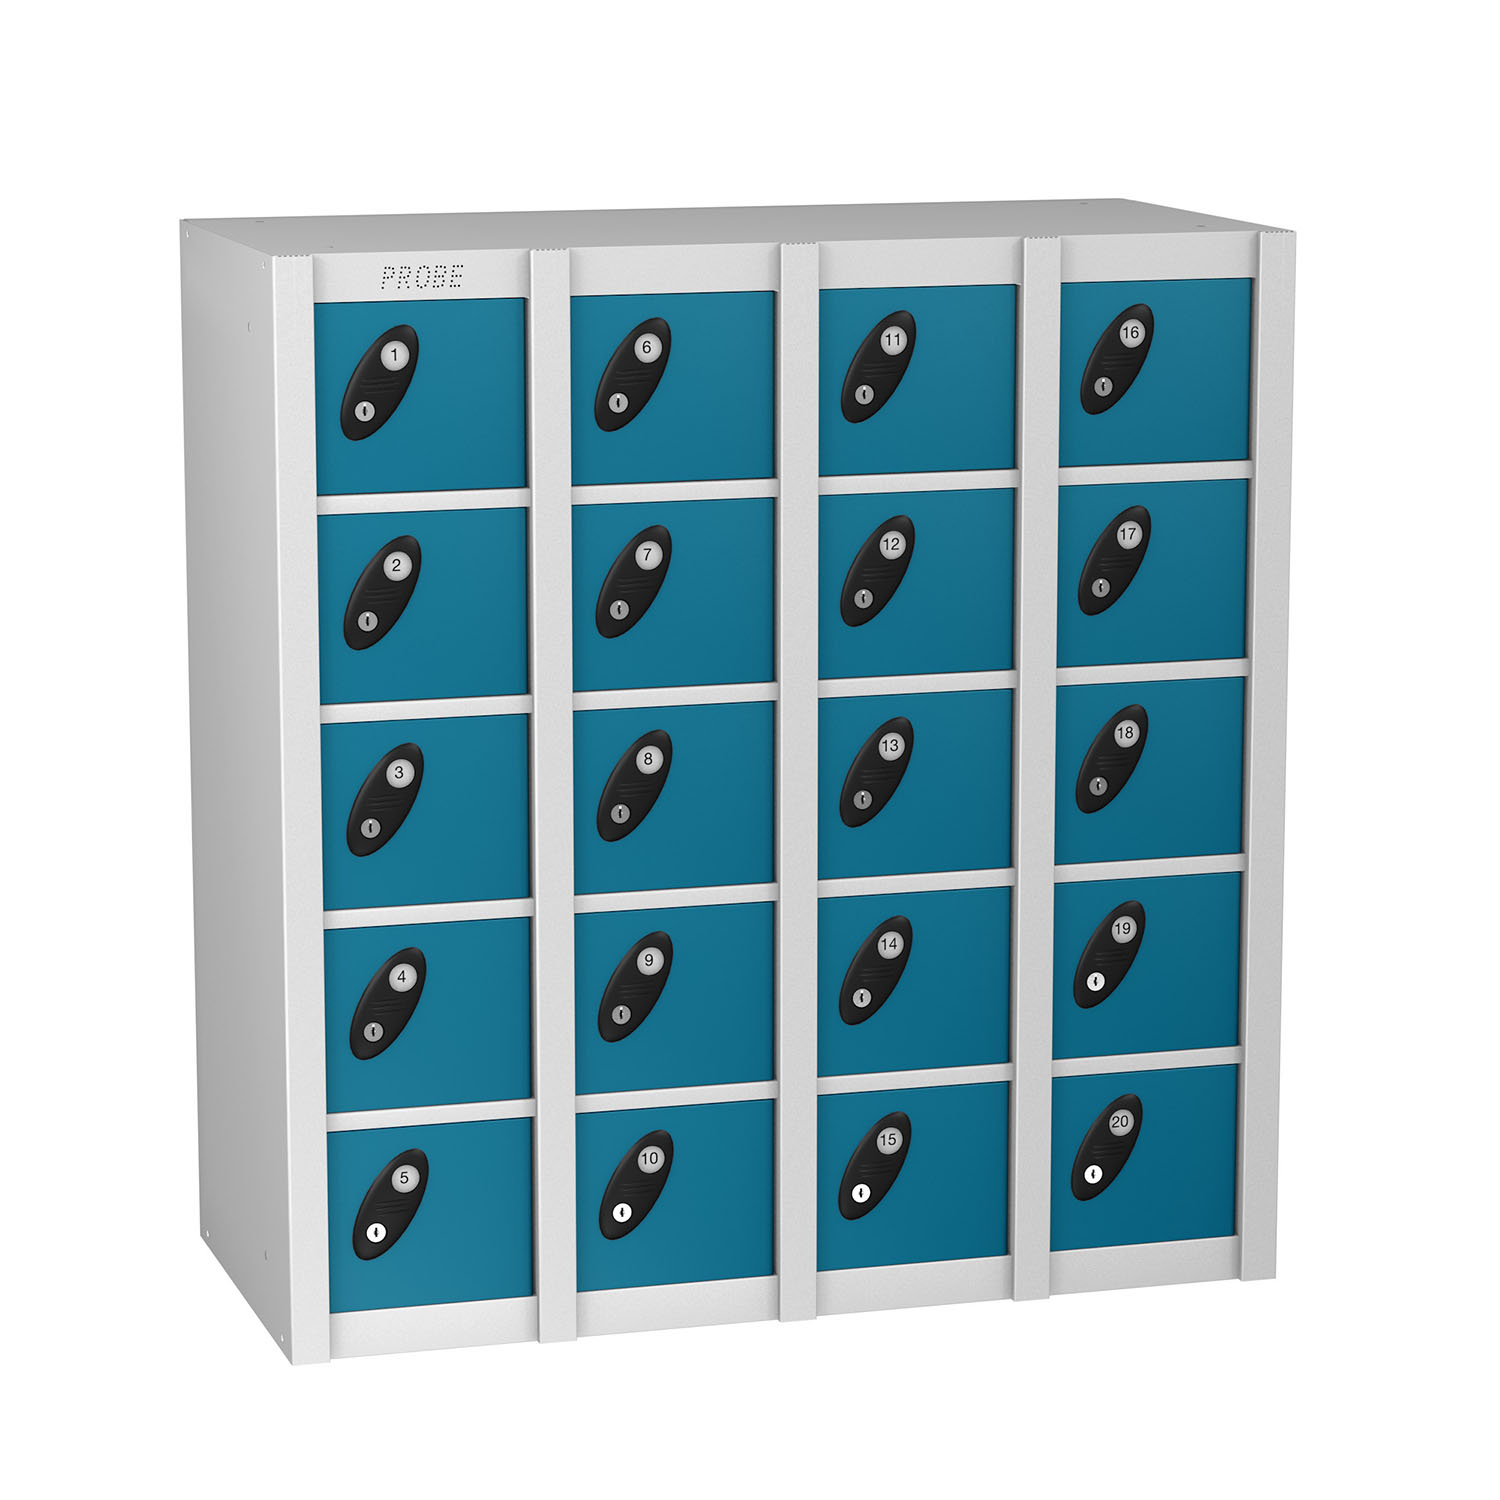 Probe 20 doors minibox lockers in blue colour